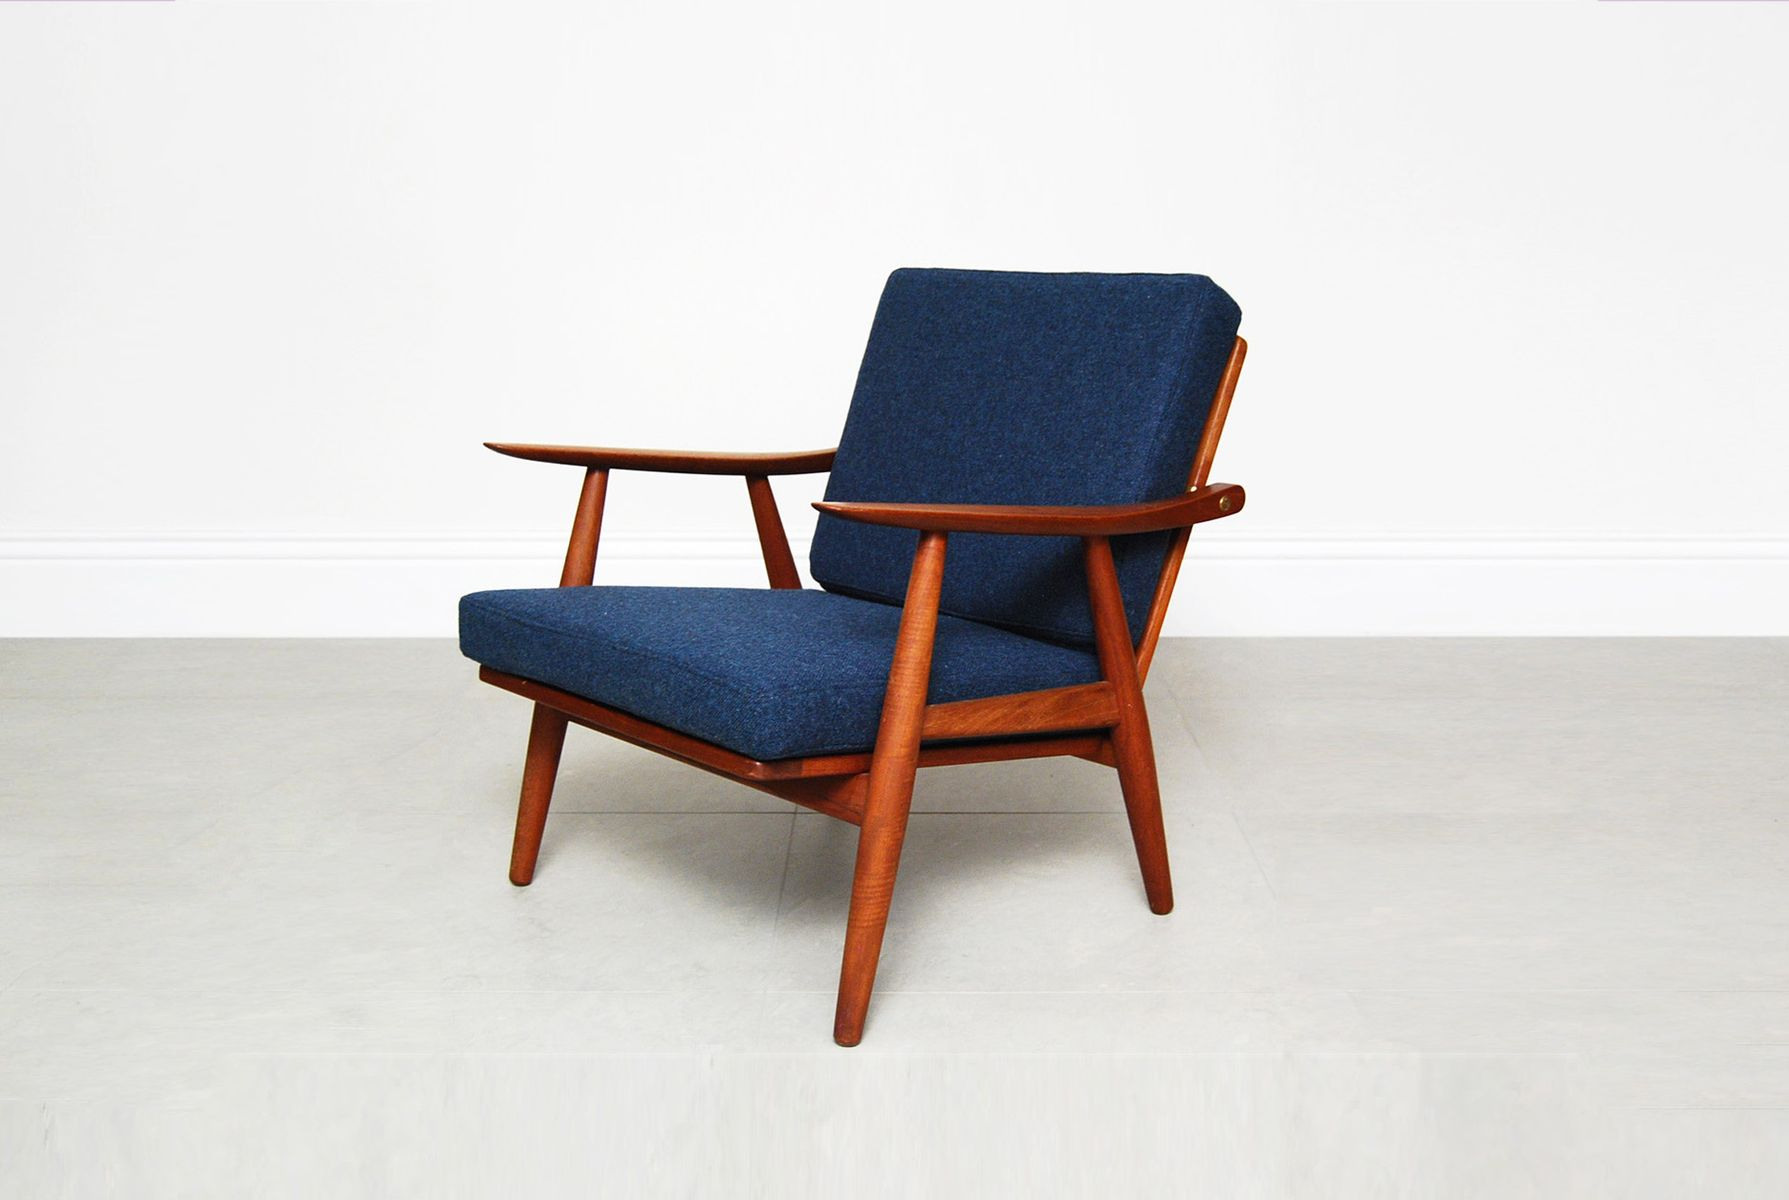 Blue GE 270 Lounge Chair by Hans Wegner for Getama for sale at Pamono